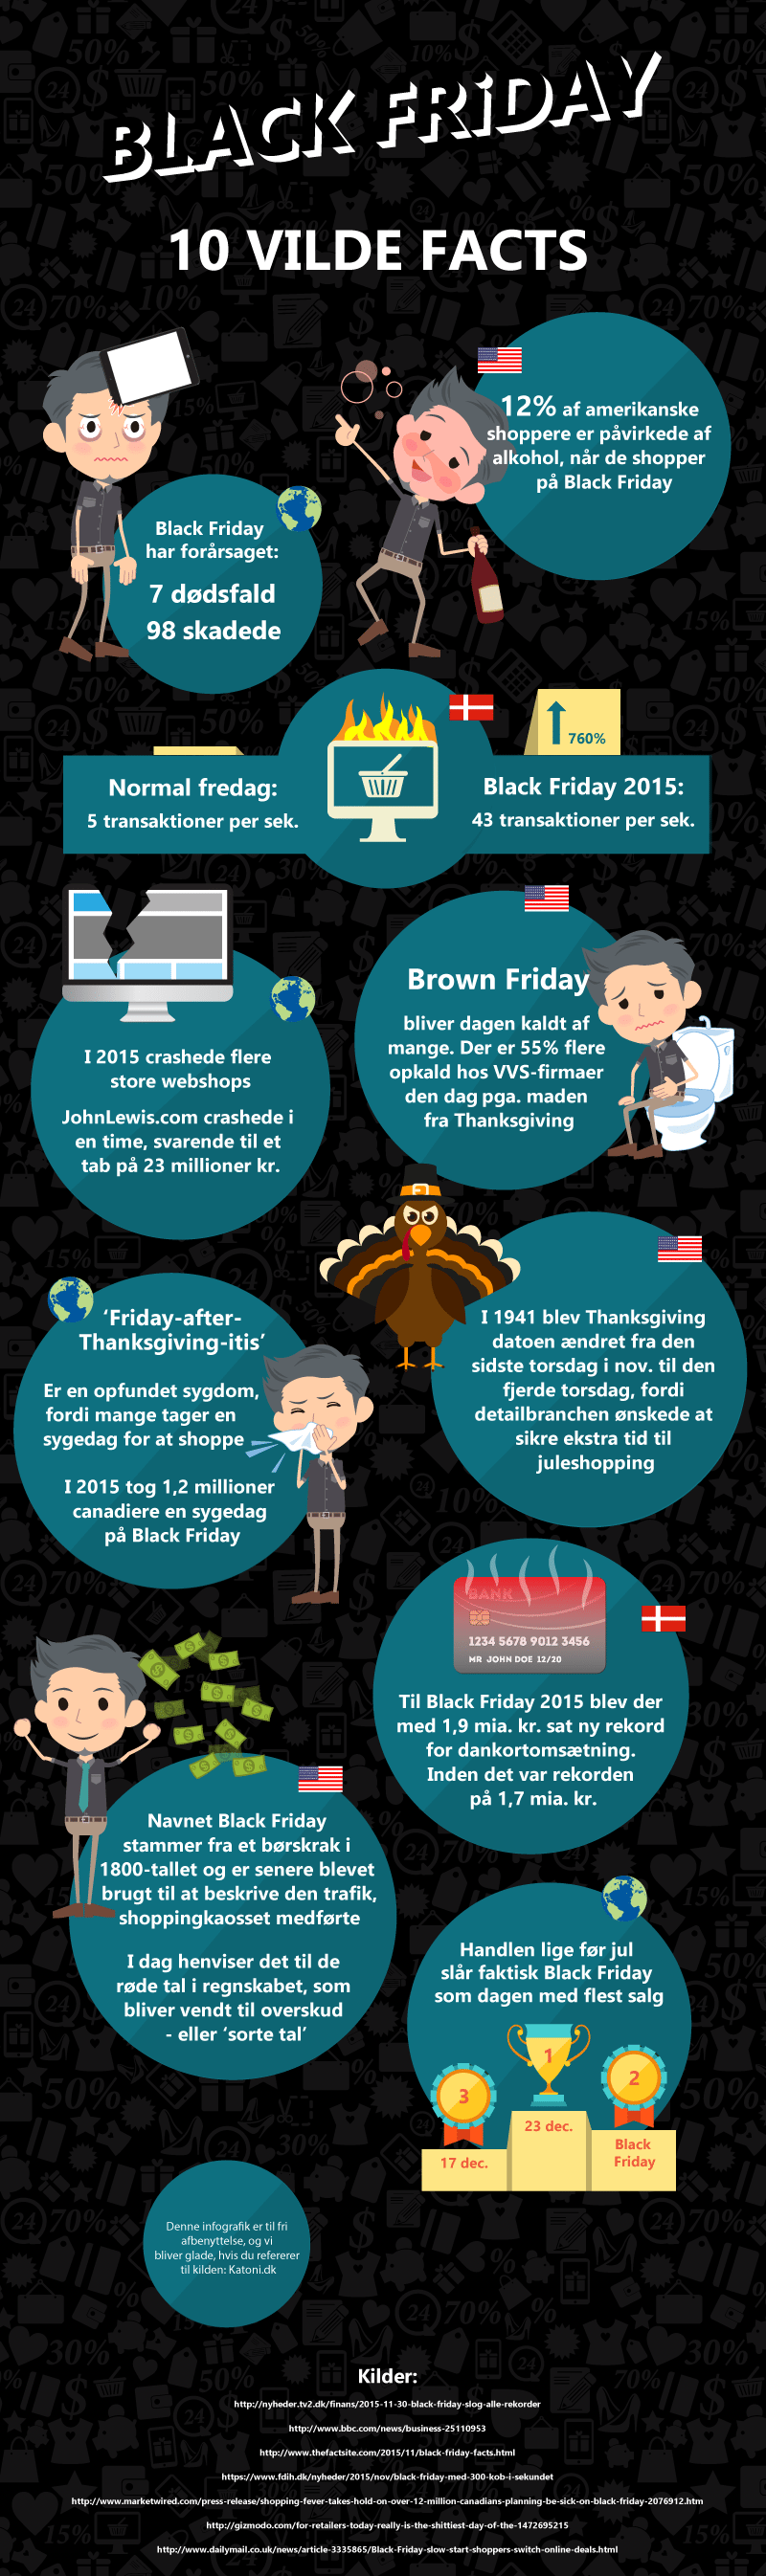 black-friday-fun-facts